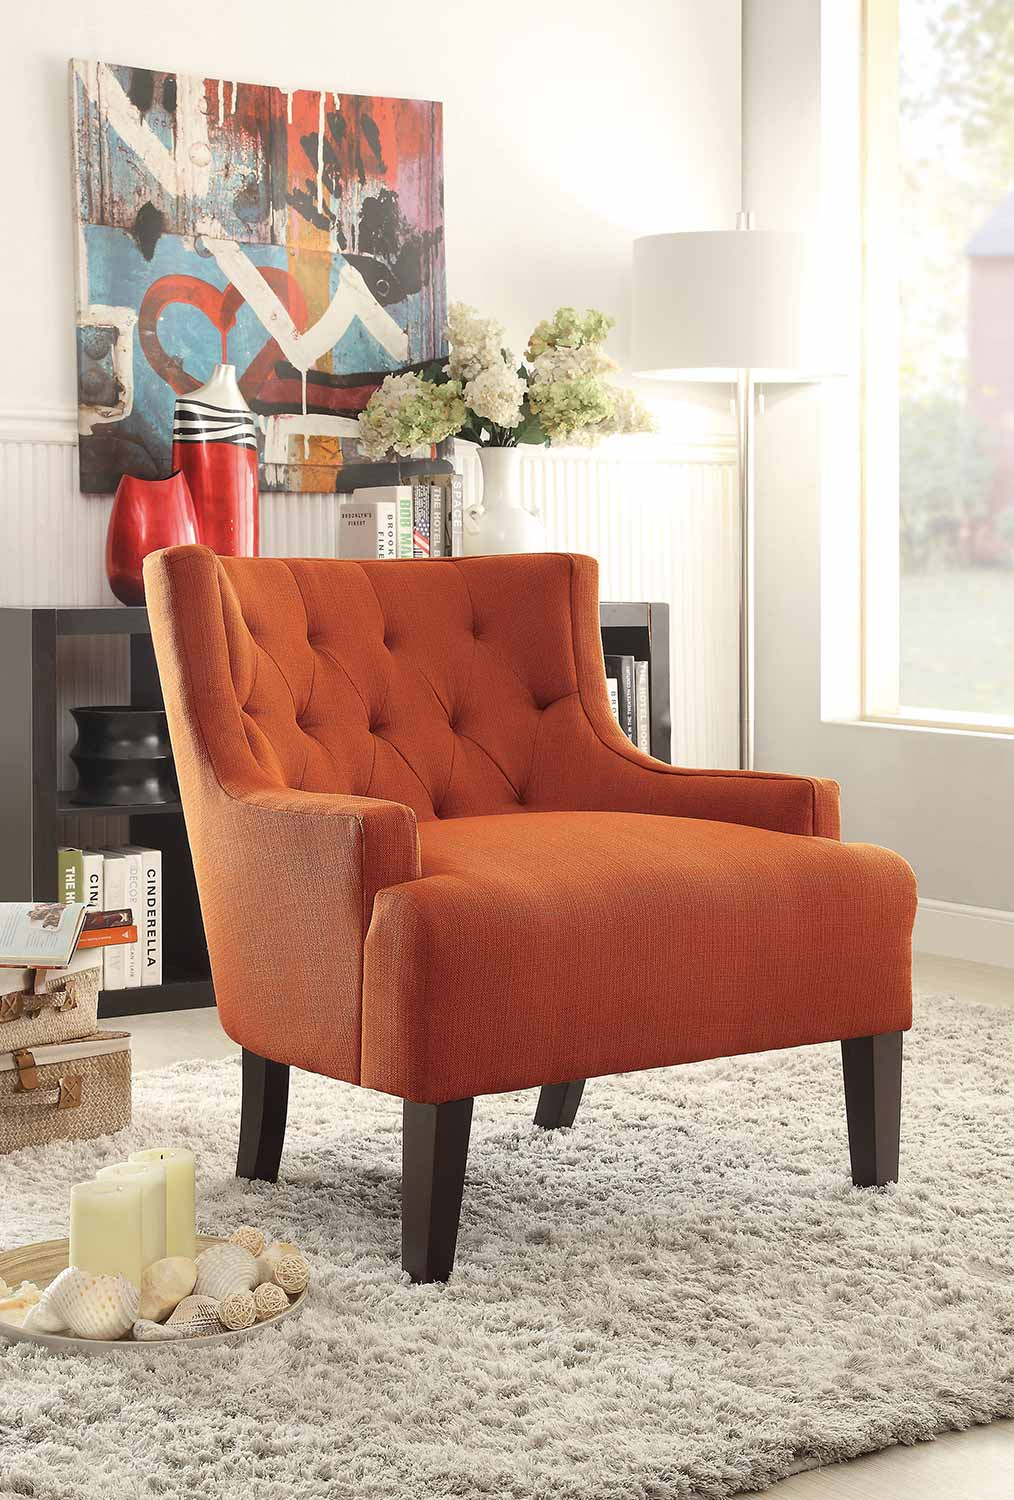 Homelegance Dulce Accent Chair - Orange